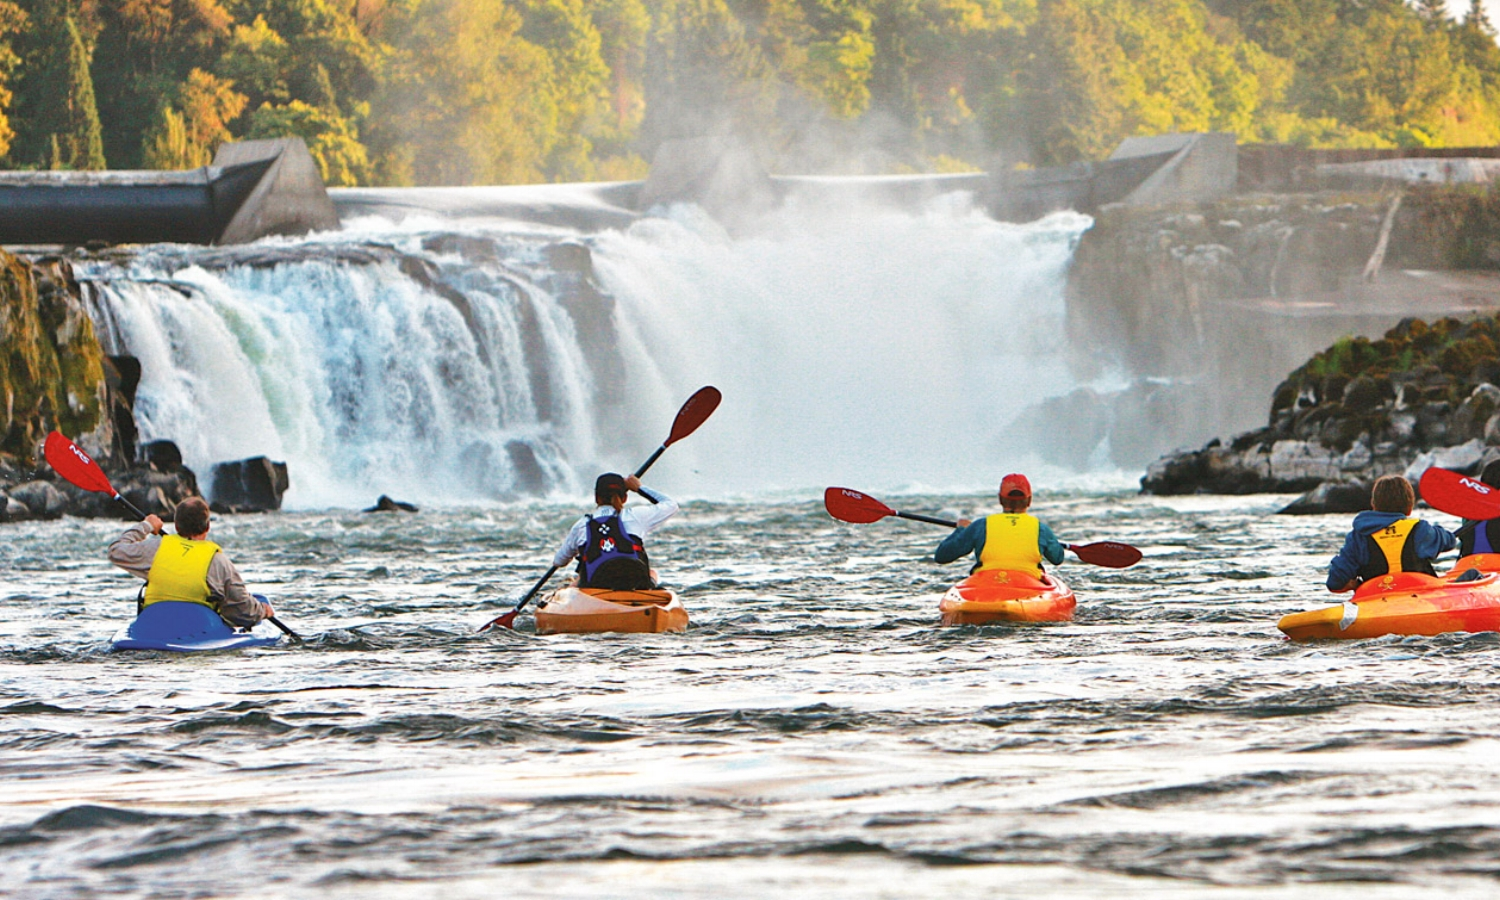 TOP WAYS TO GET OUTSIDE - What really sets this mini-metropolis apart is its instant access to the Pacific Northwest's jaw-dropping, seemingly untouched landscapes.